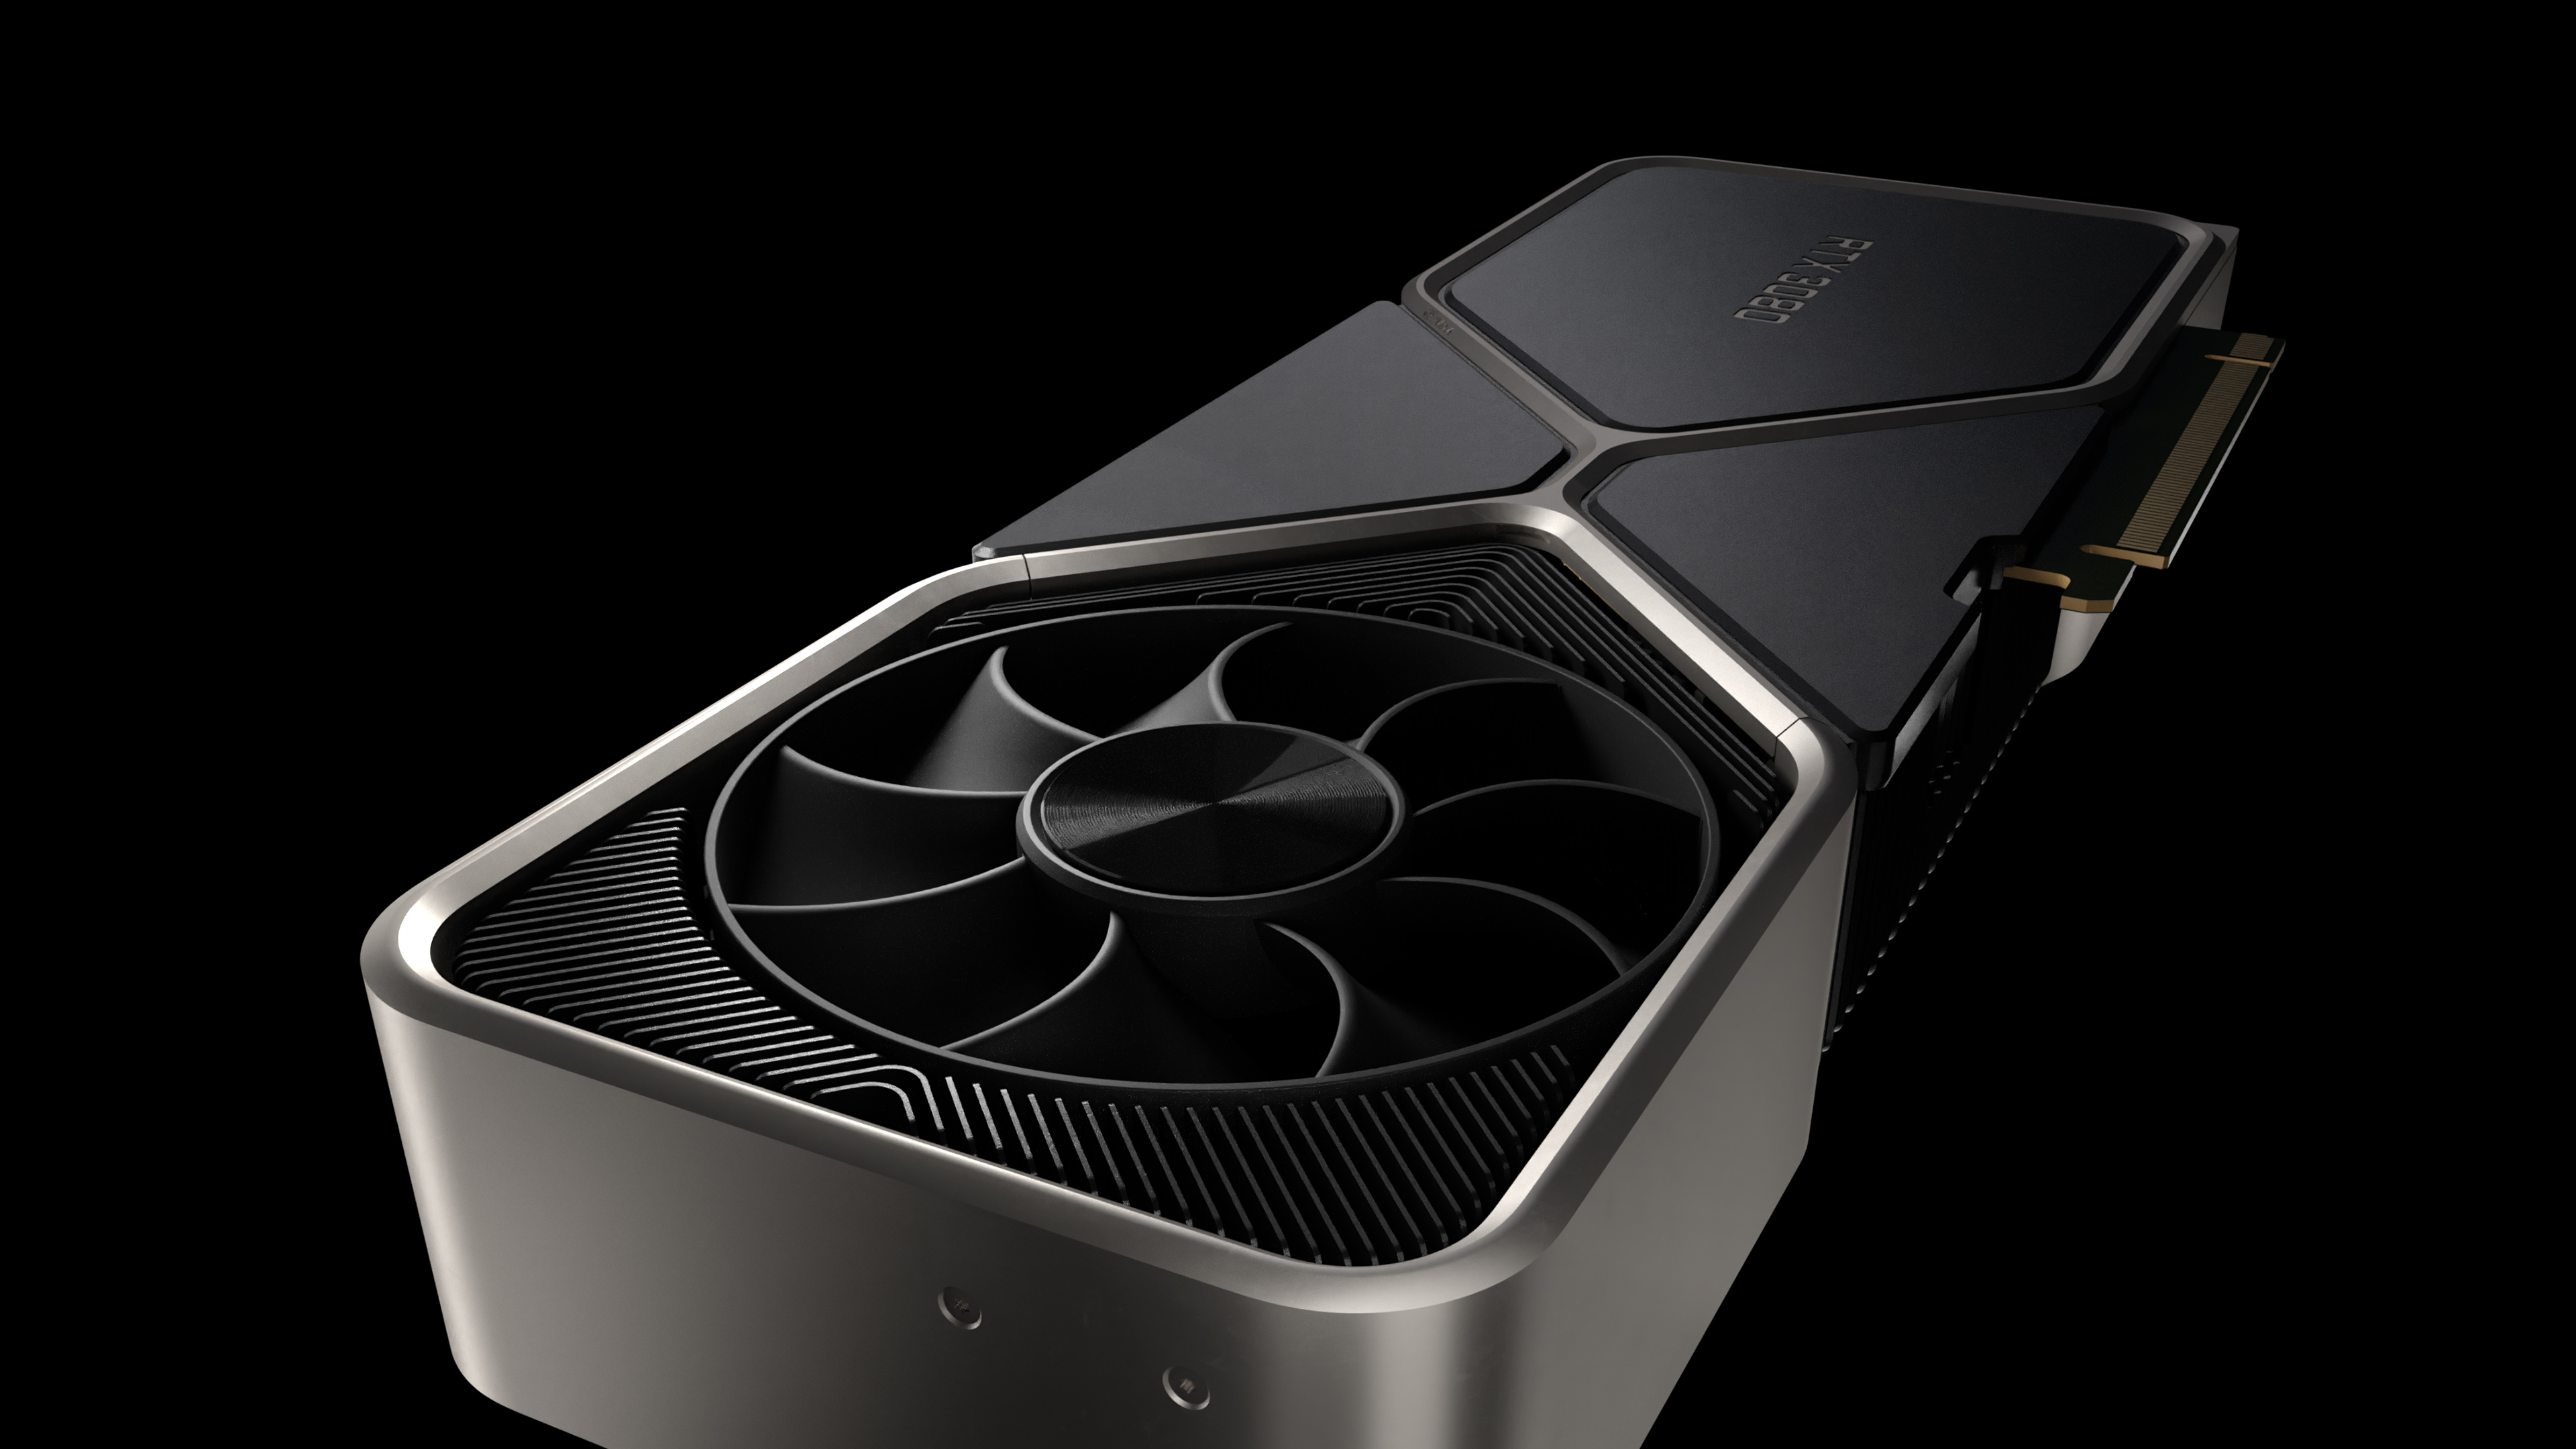 A close-up of the fans on the RTX 3080